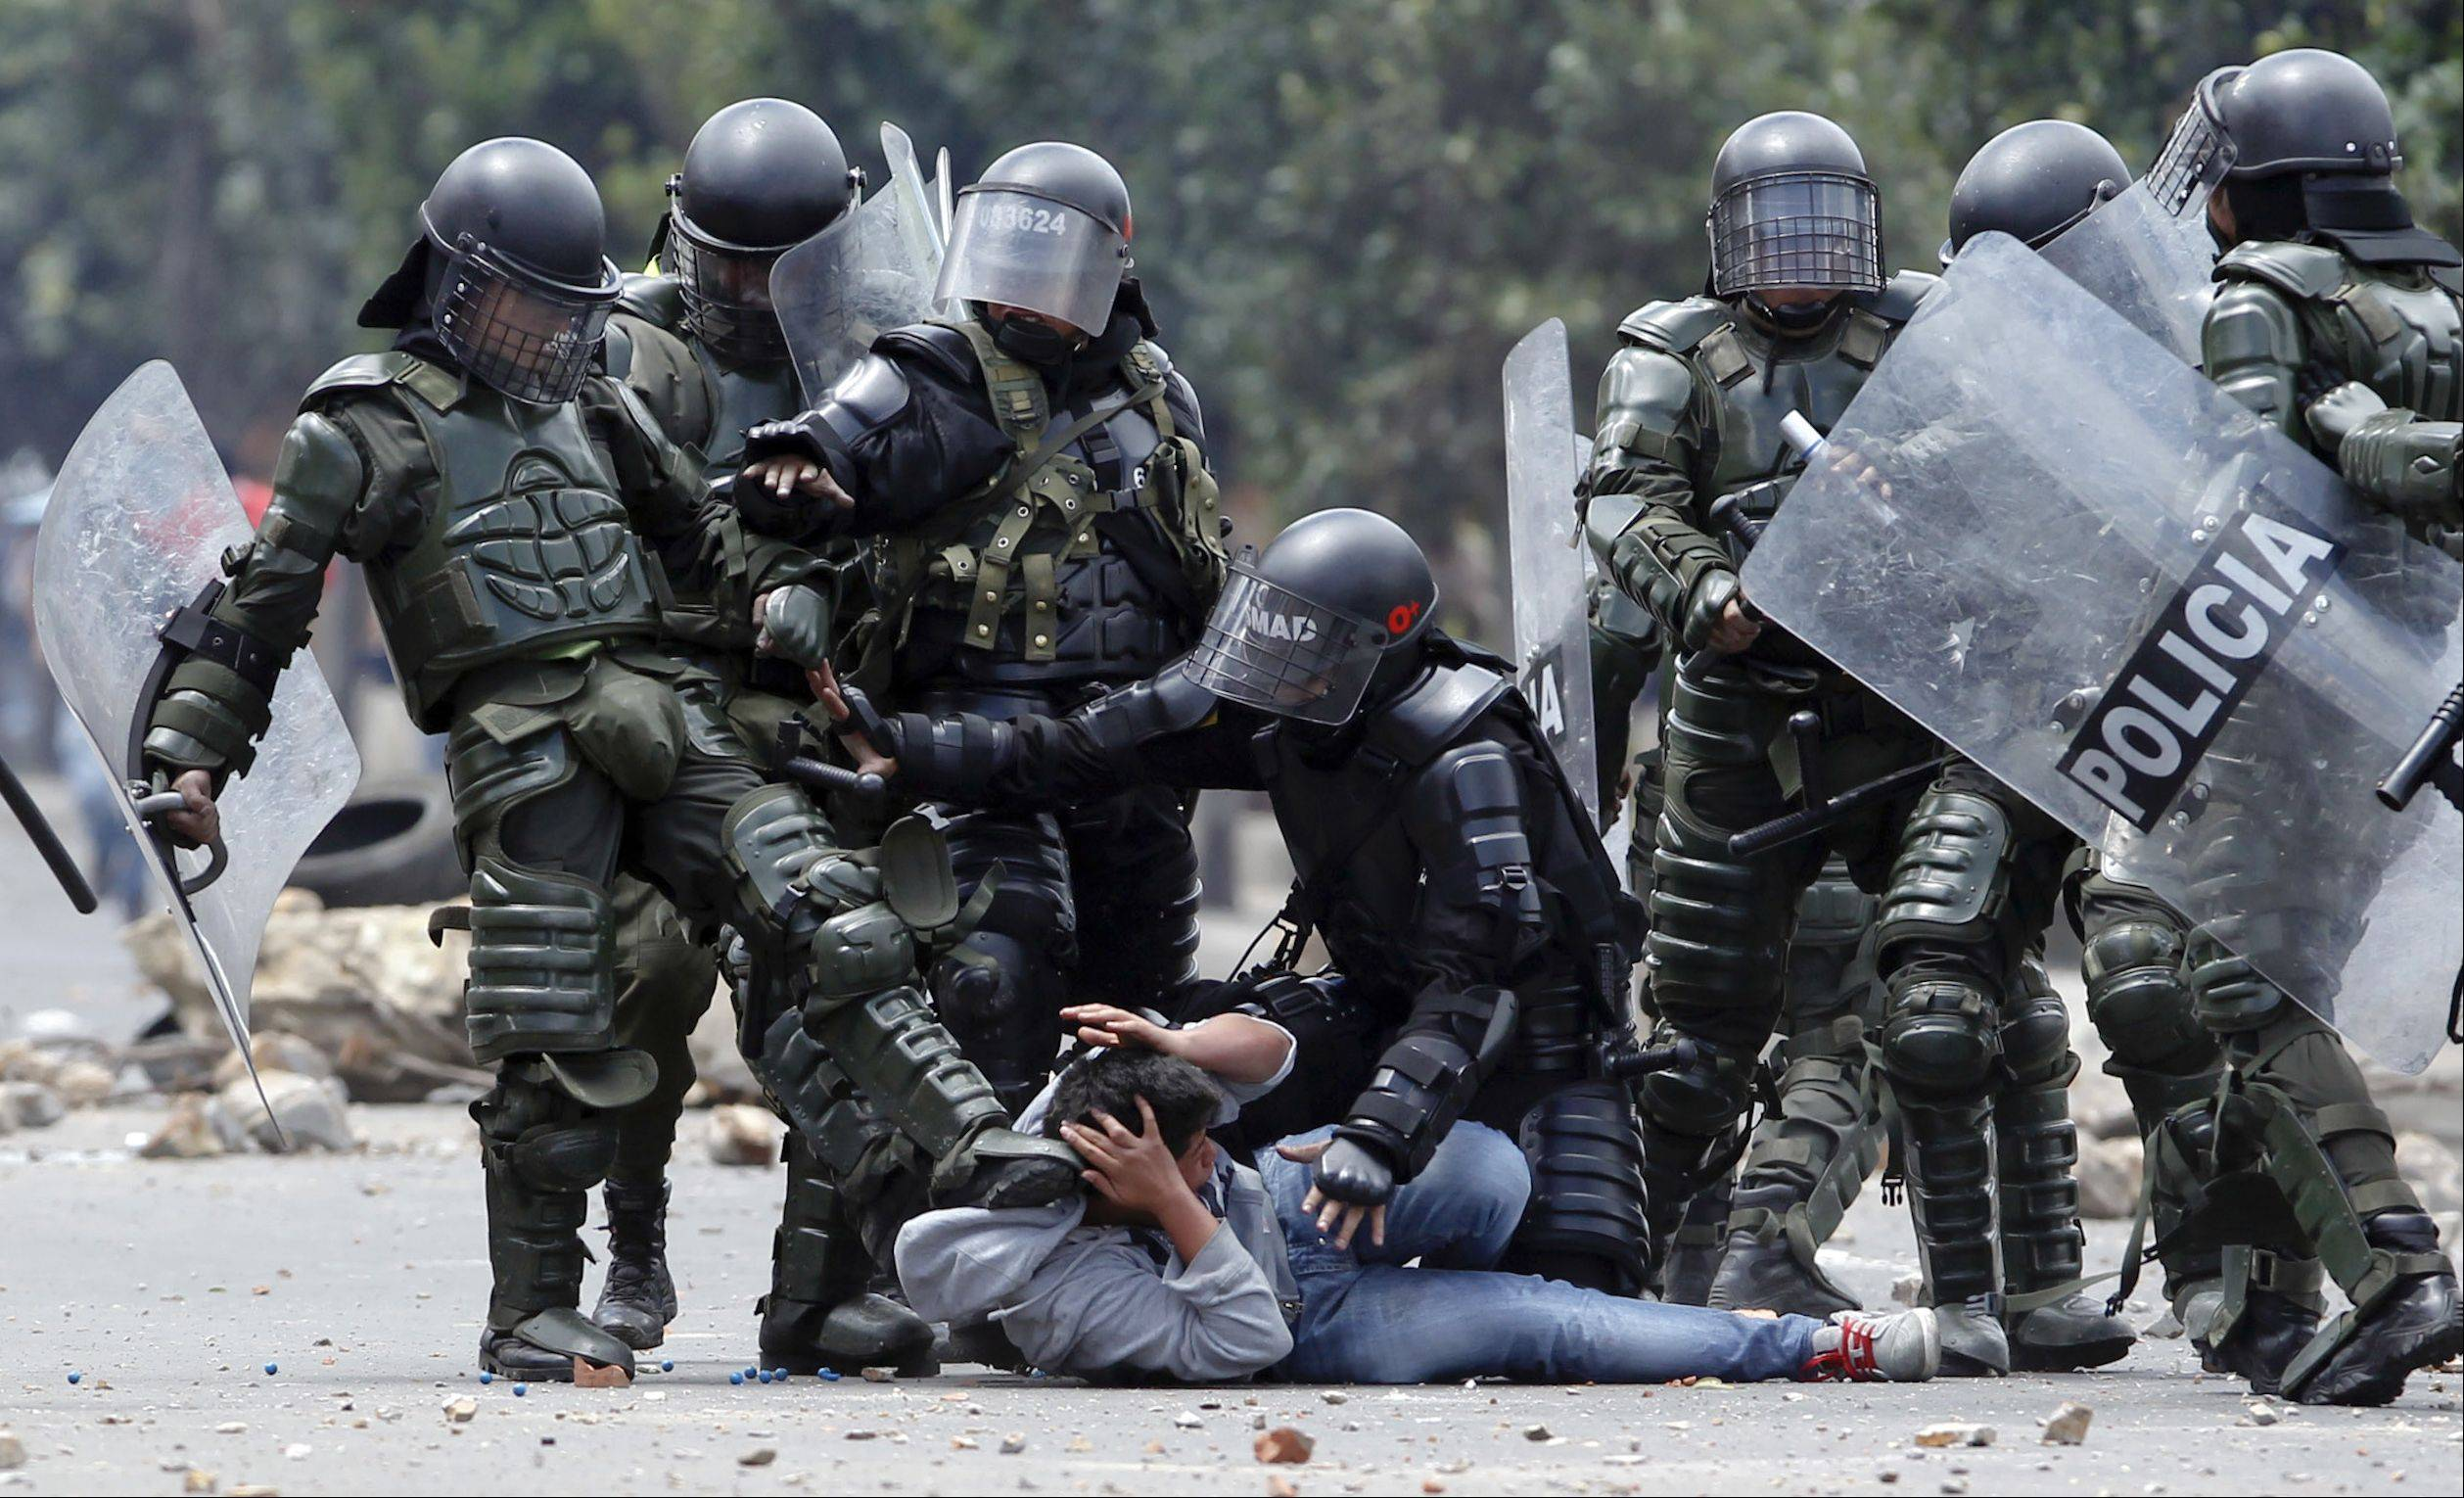 A riot police officer, left, kicks a protester as another, center, tries to protect him before his arrest during protests in Ubate, north of Bogota, Colombia, Monday, Aug. 26, 2013. Hundreds of protesters clashed with police in support of farmers who have been blockading Colombian highways for a week.